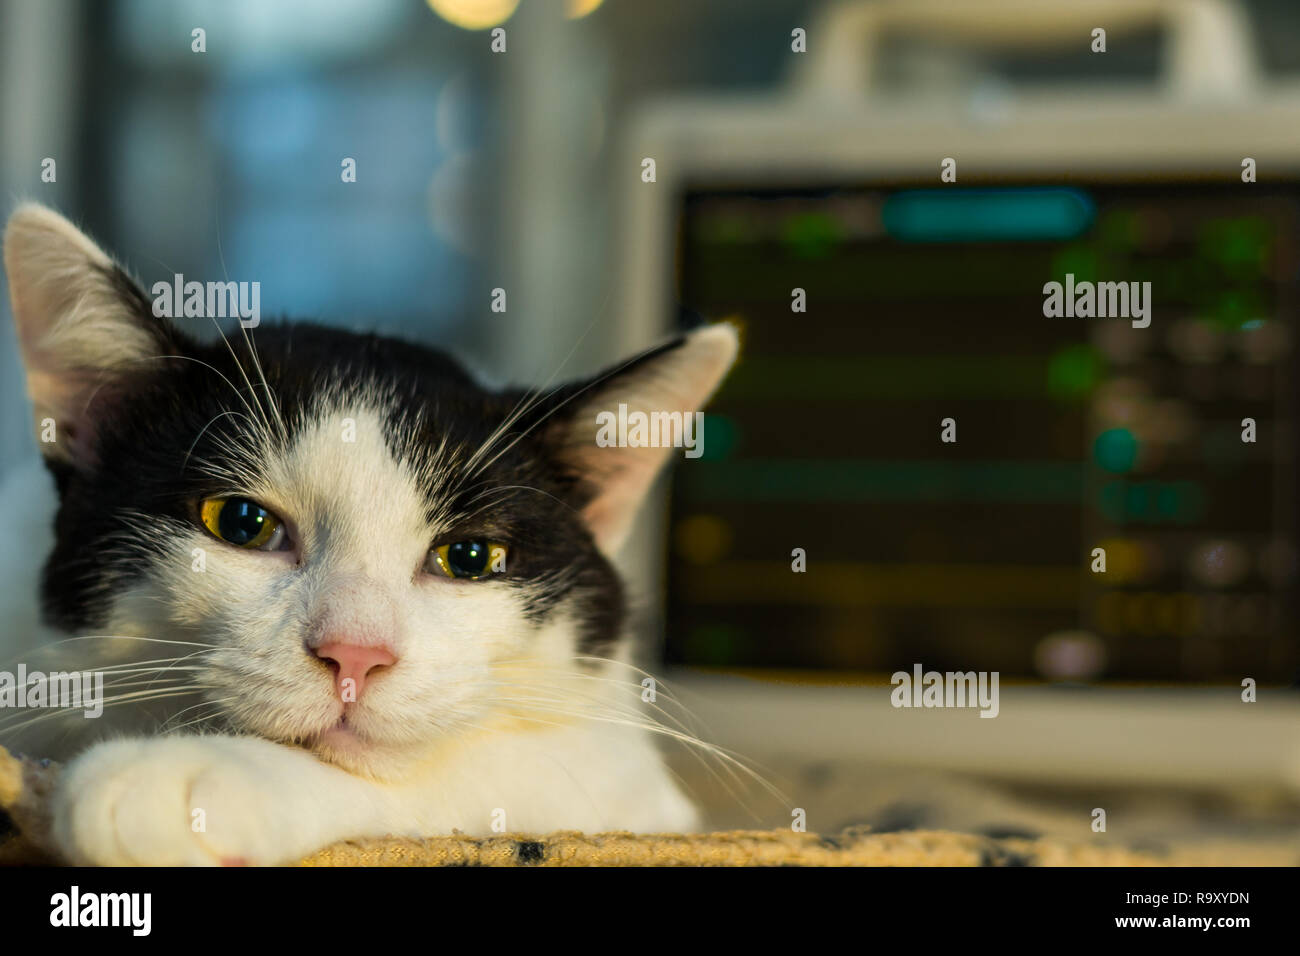 anesthetized adult cat and open eyes, monitor on background - Stock Image